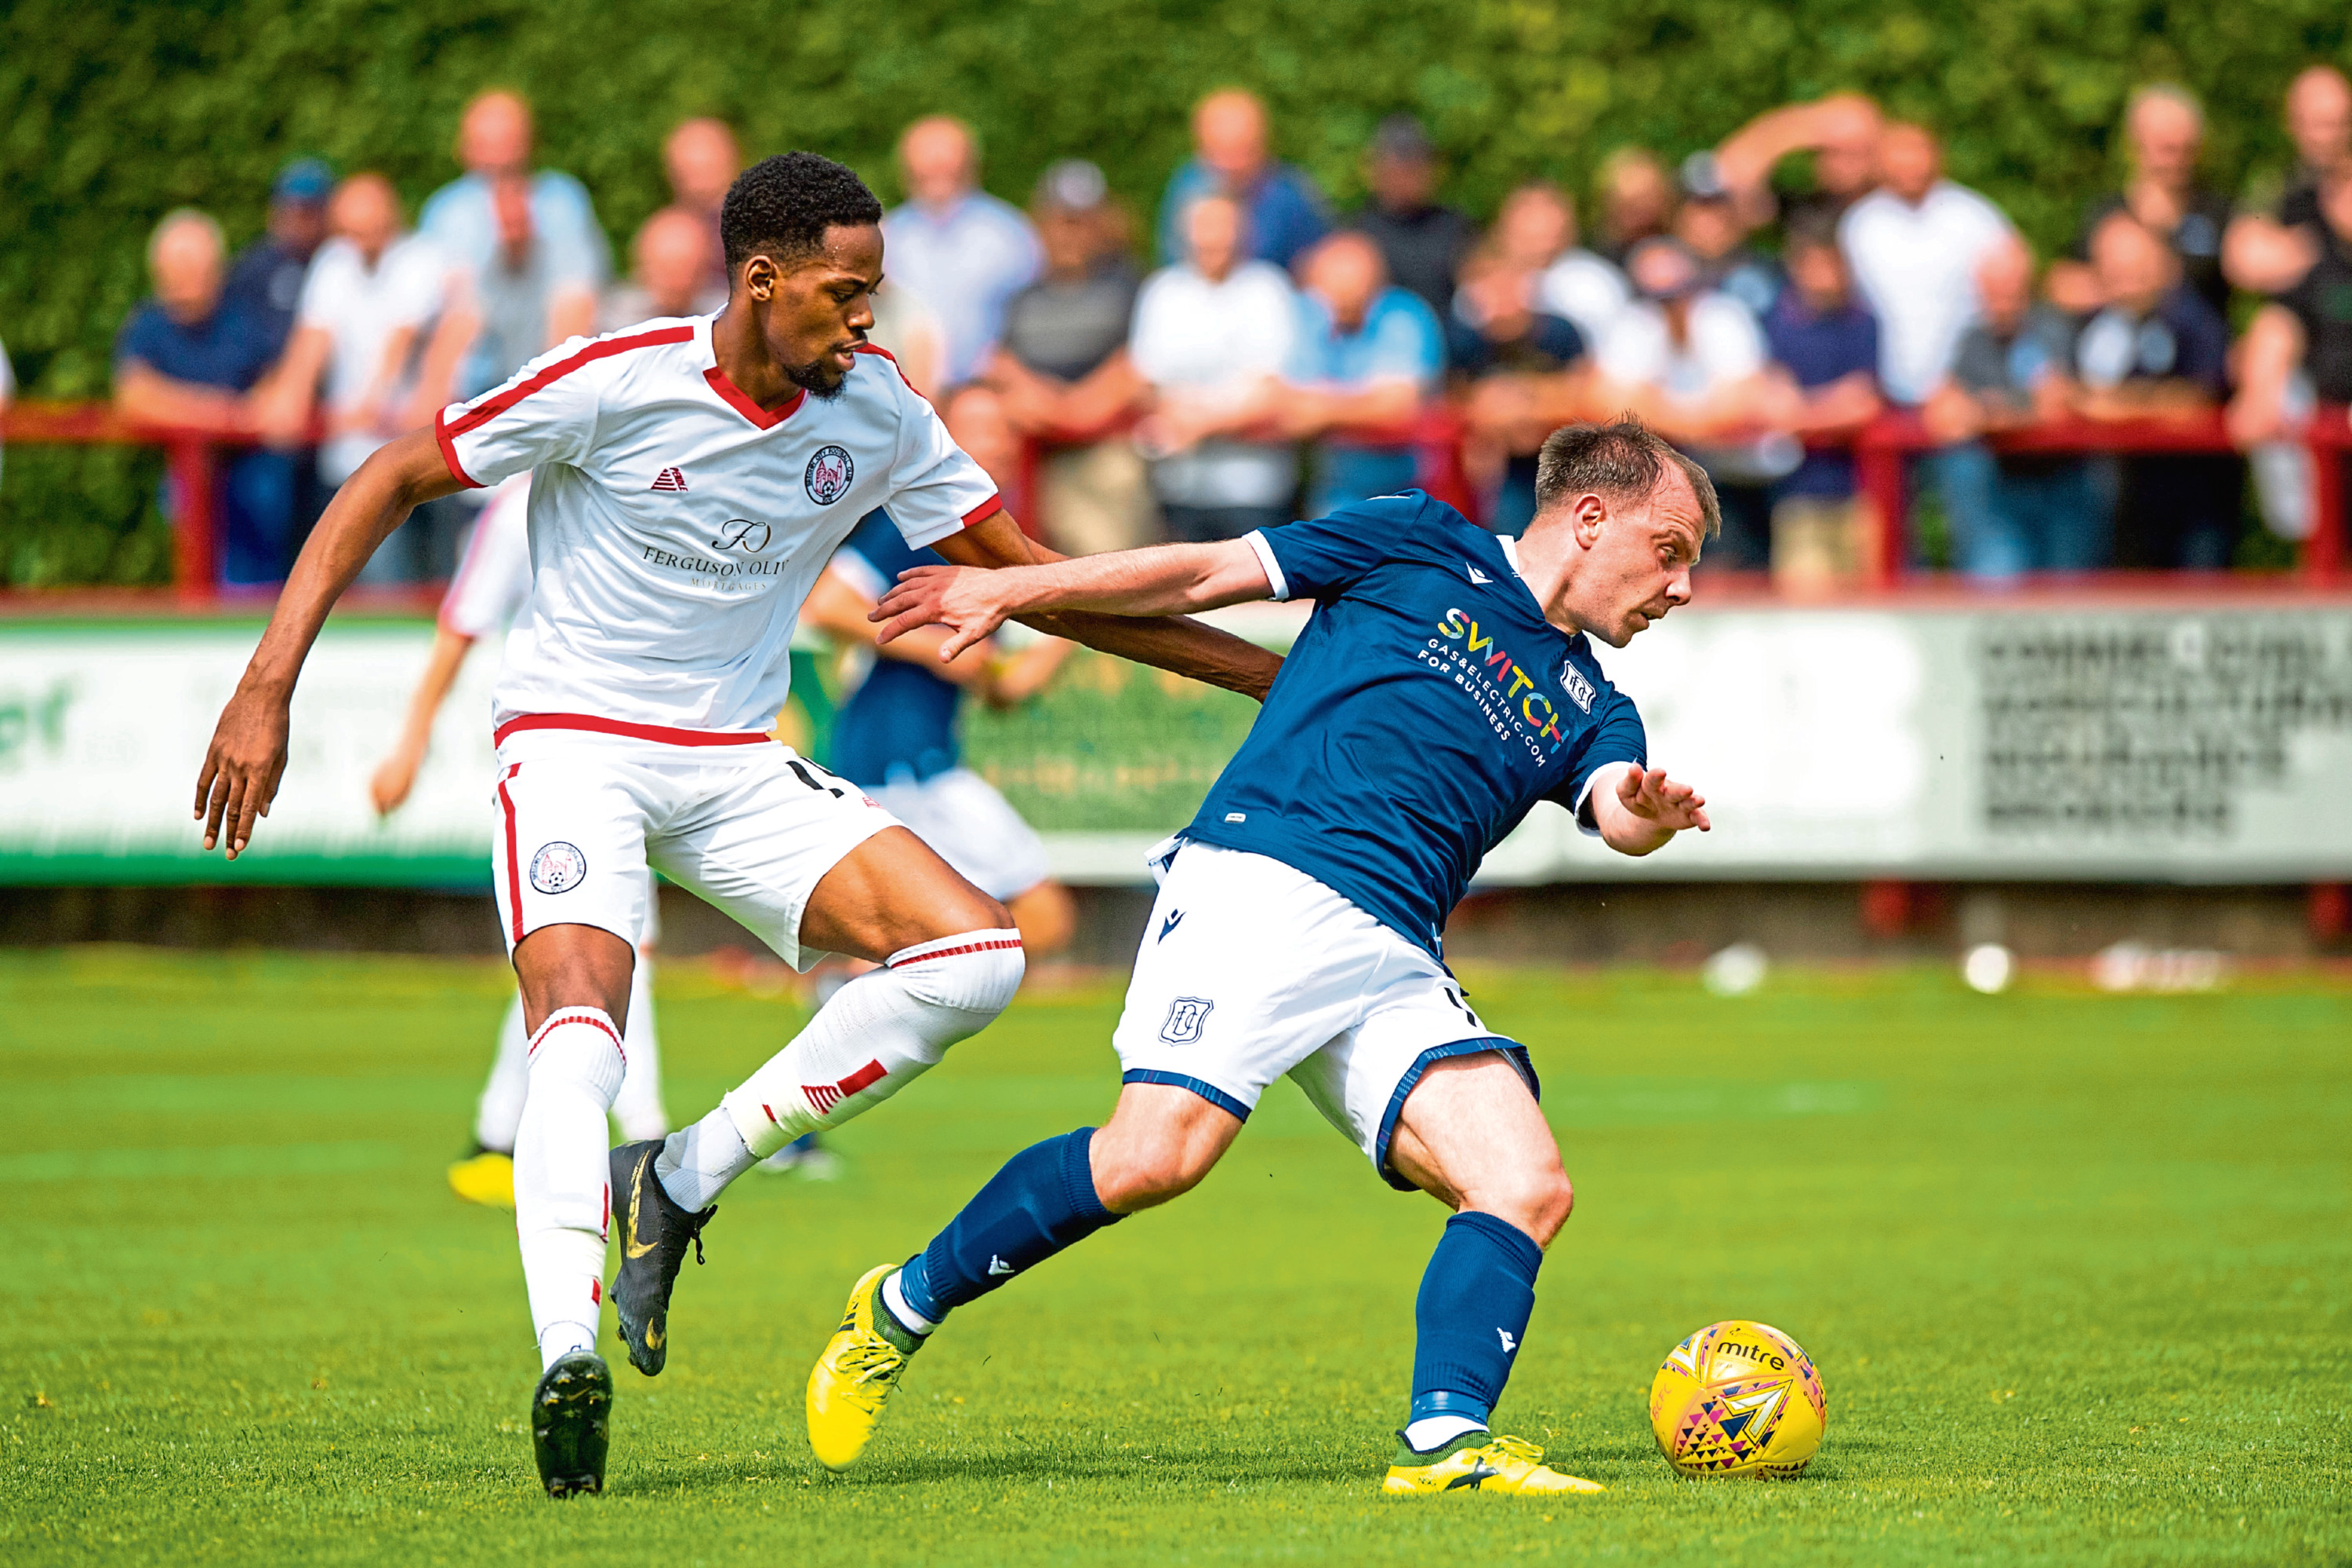 Dundee's Paul McGowan in action against Brechin.